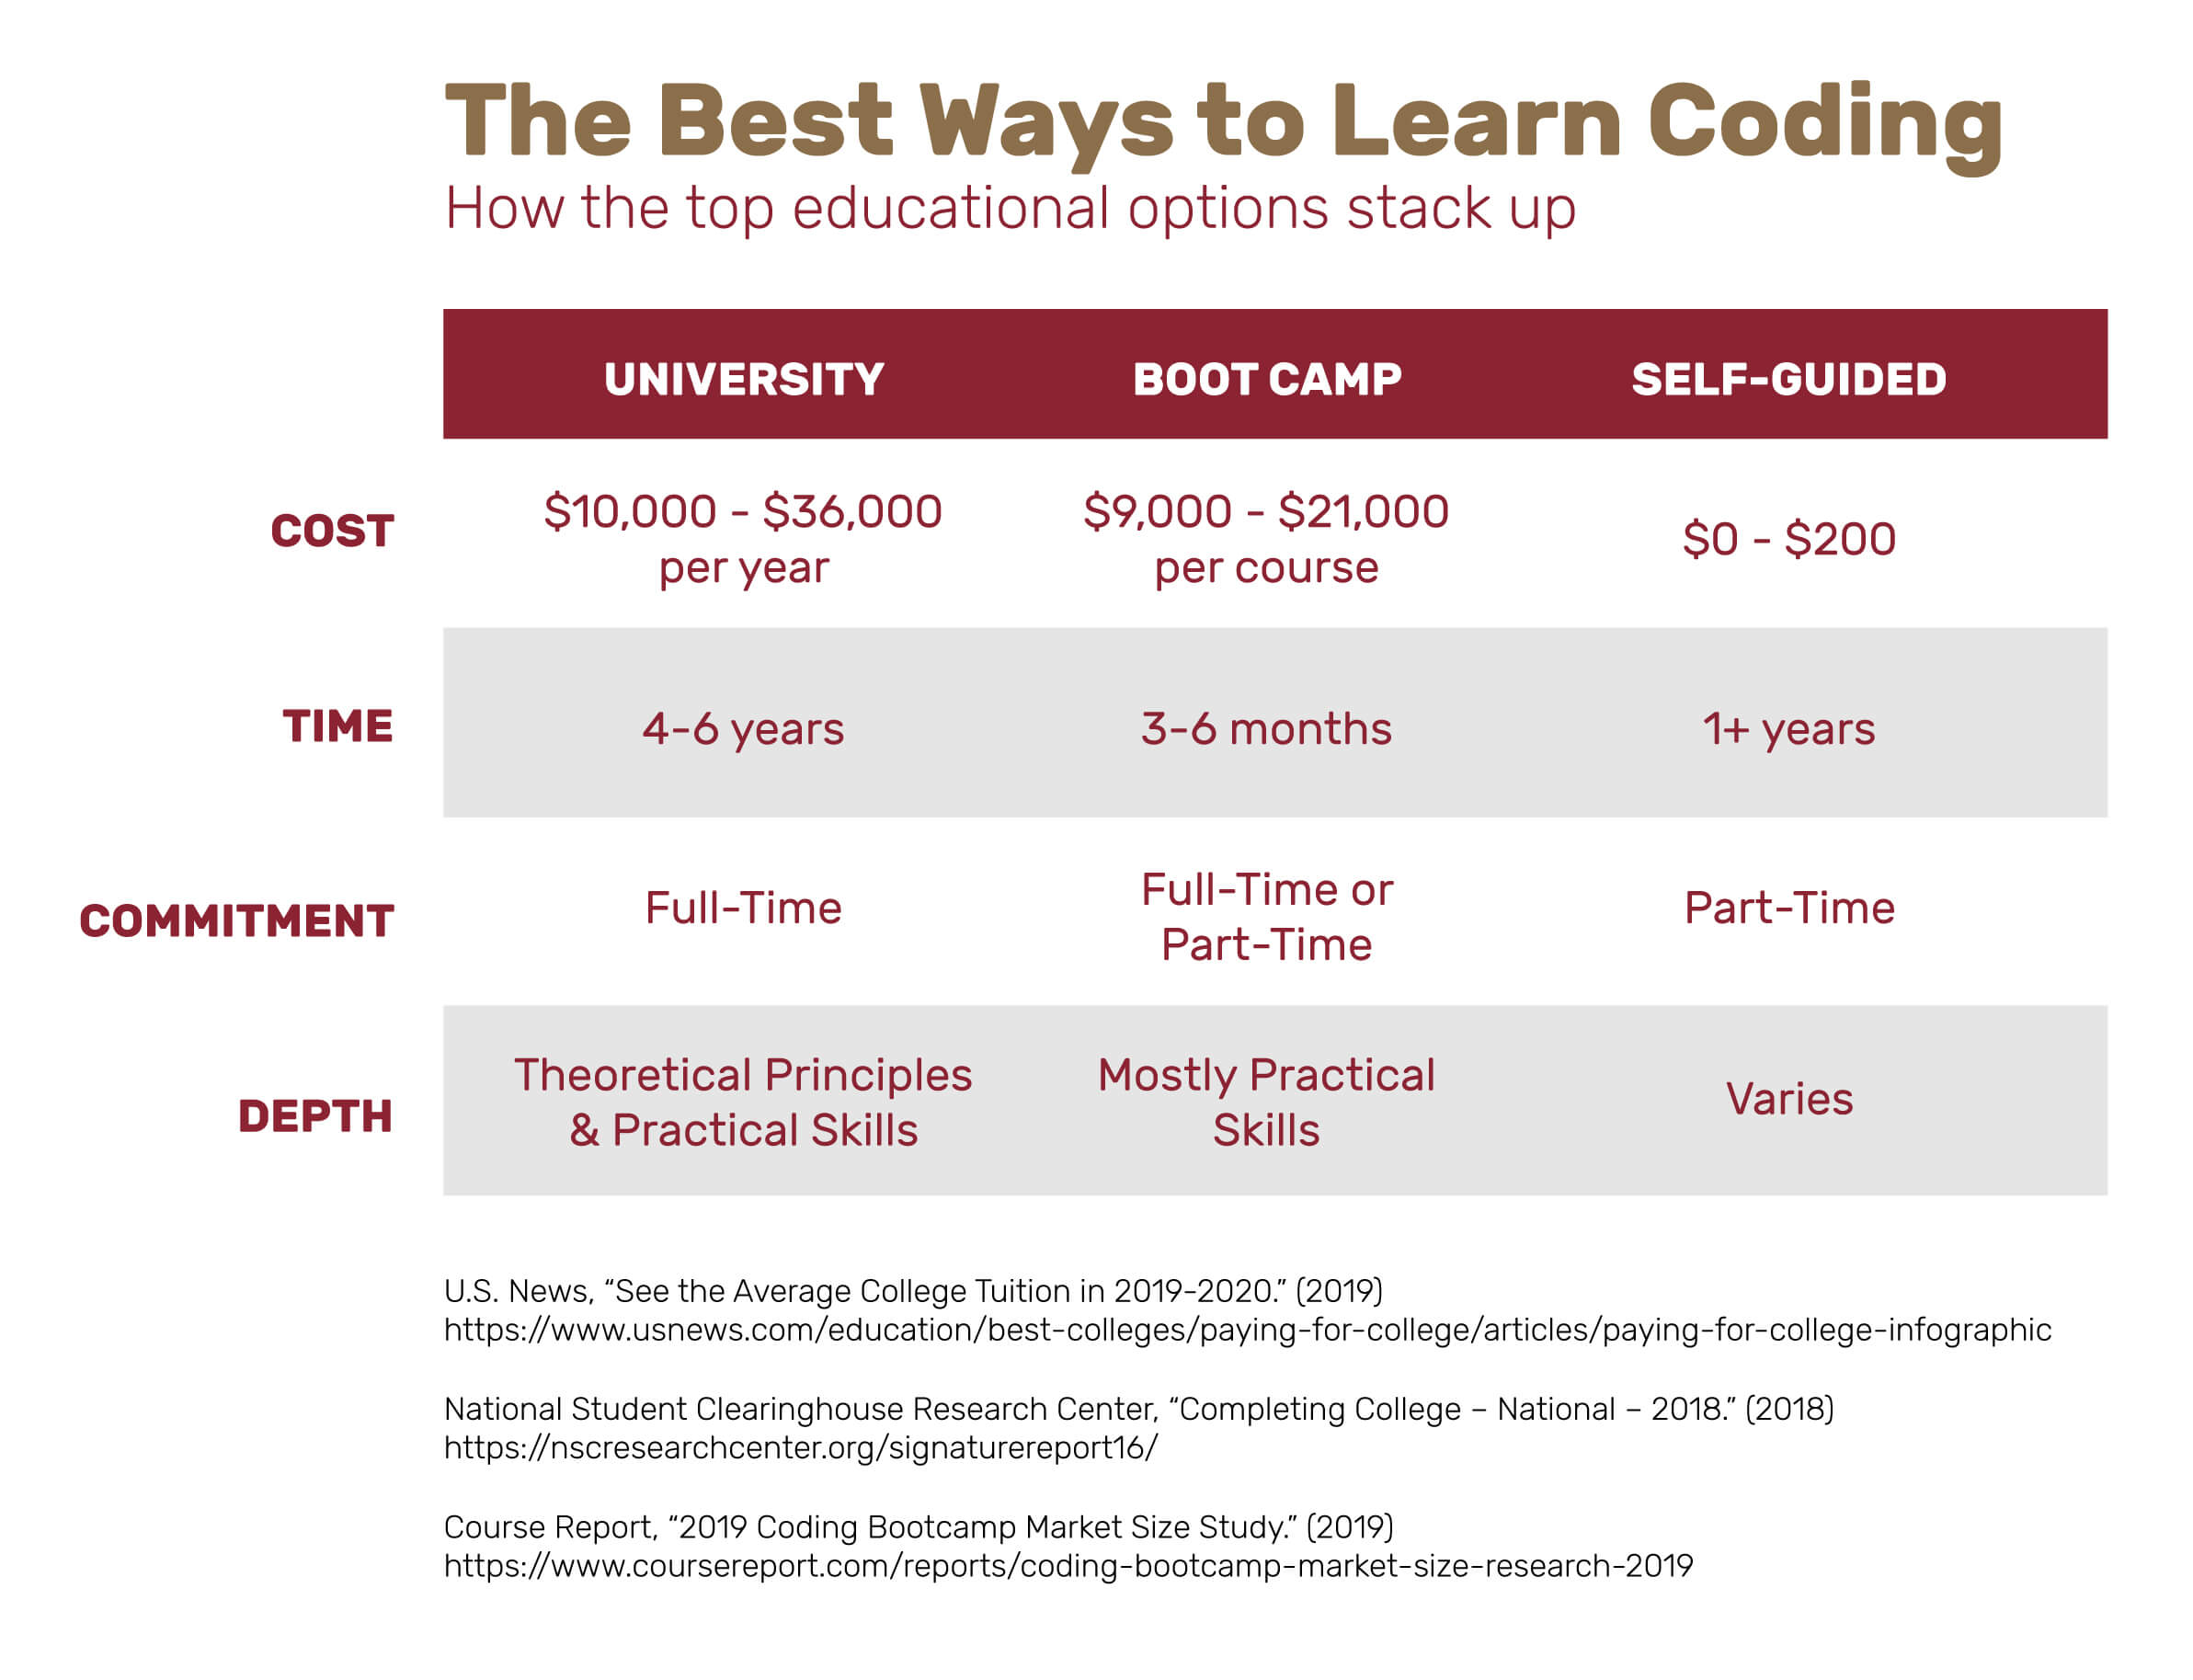 The best ways to learn coding, and how they compare